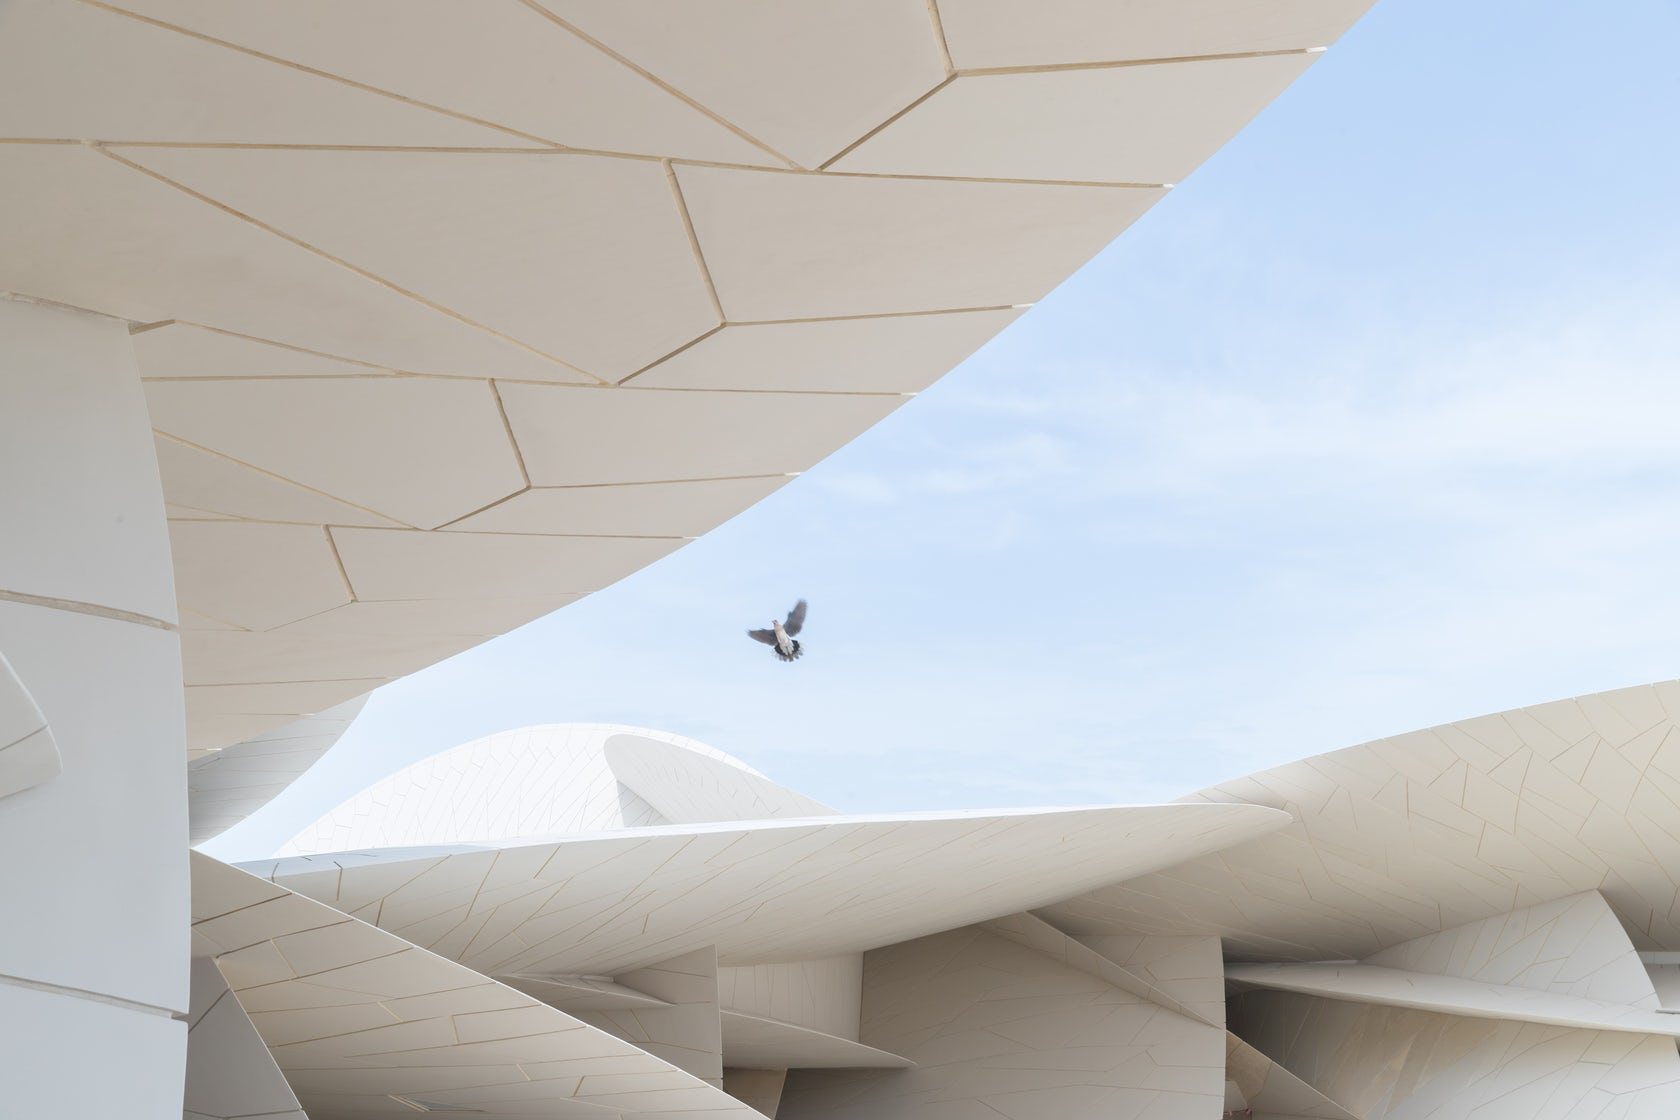 Atelier Jean Nouvel Presents National Museum Of Qatar in Doha